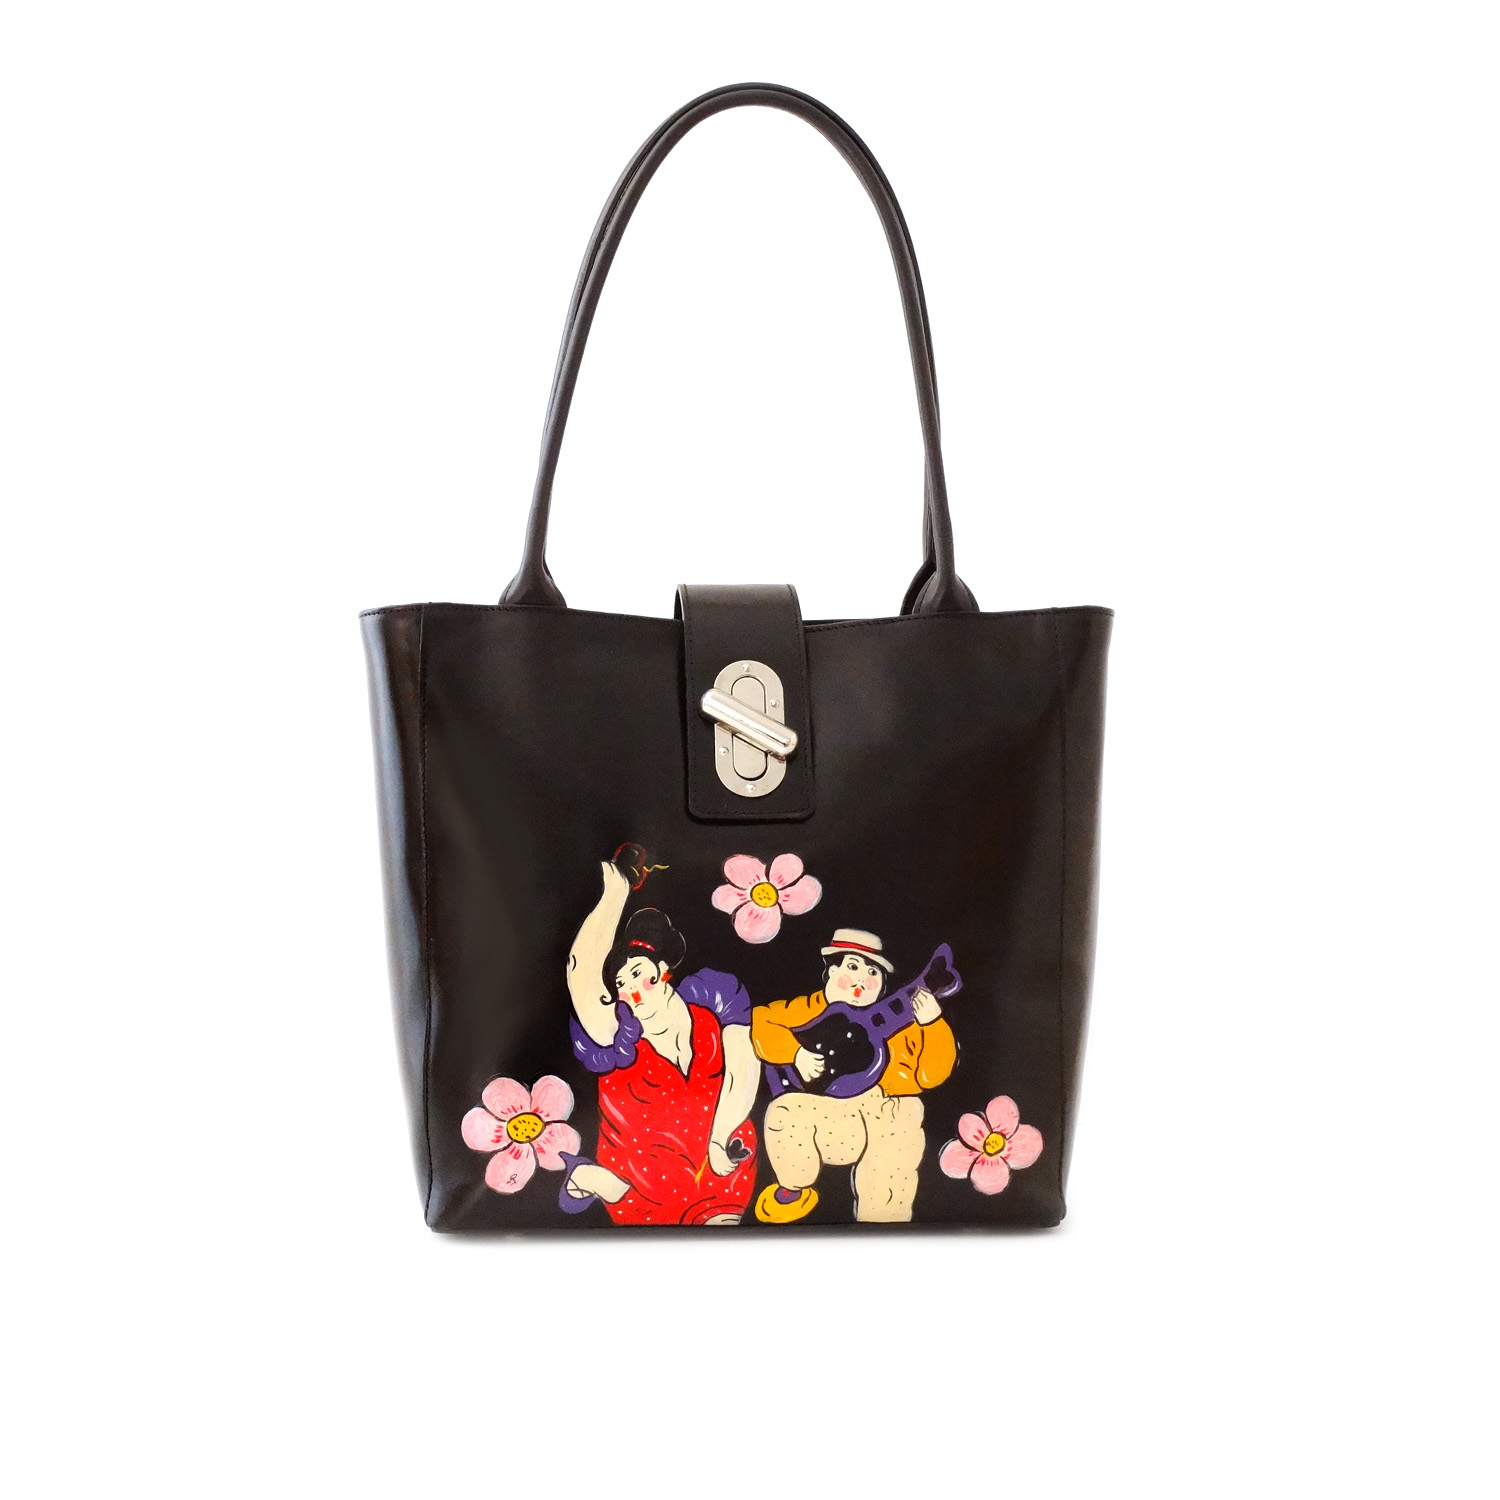 Hand painted bag - Tribute to the musicians by Botero